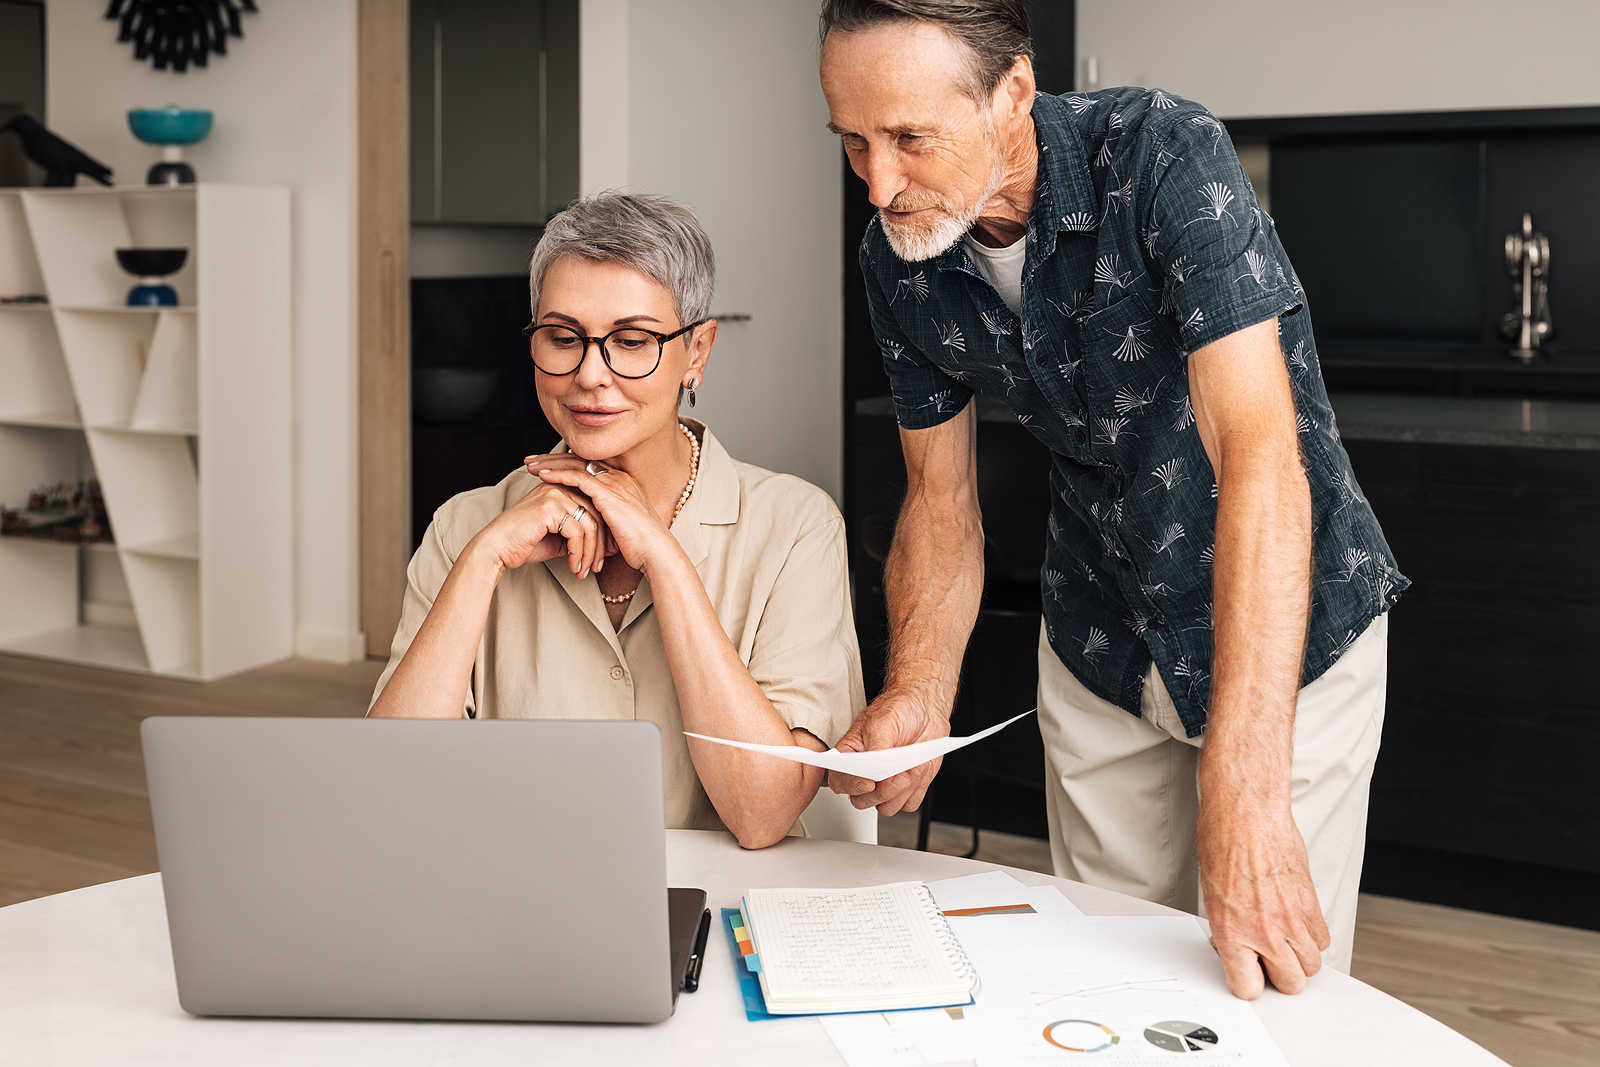 a man and woman look at their online bank and loan accounts together.